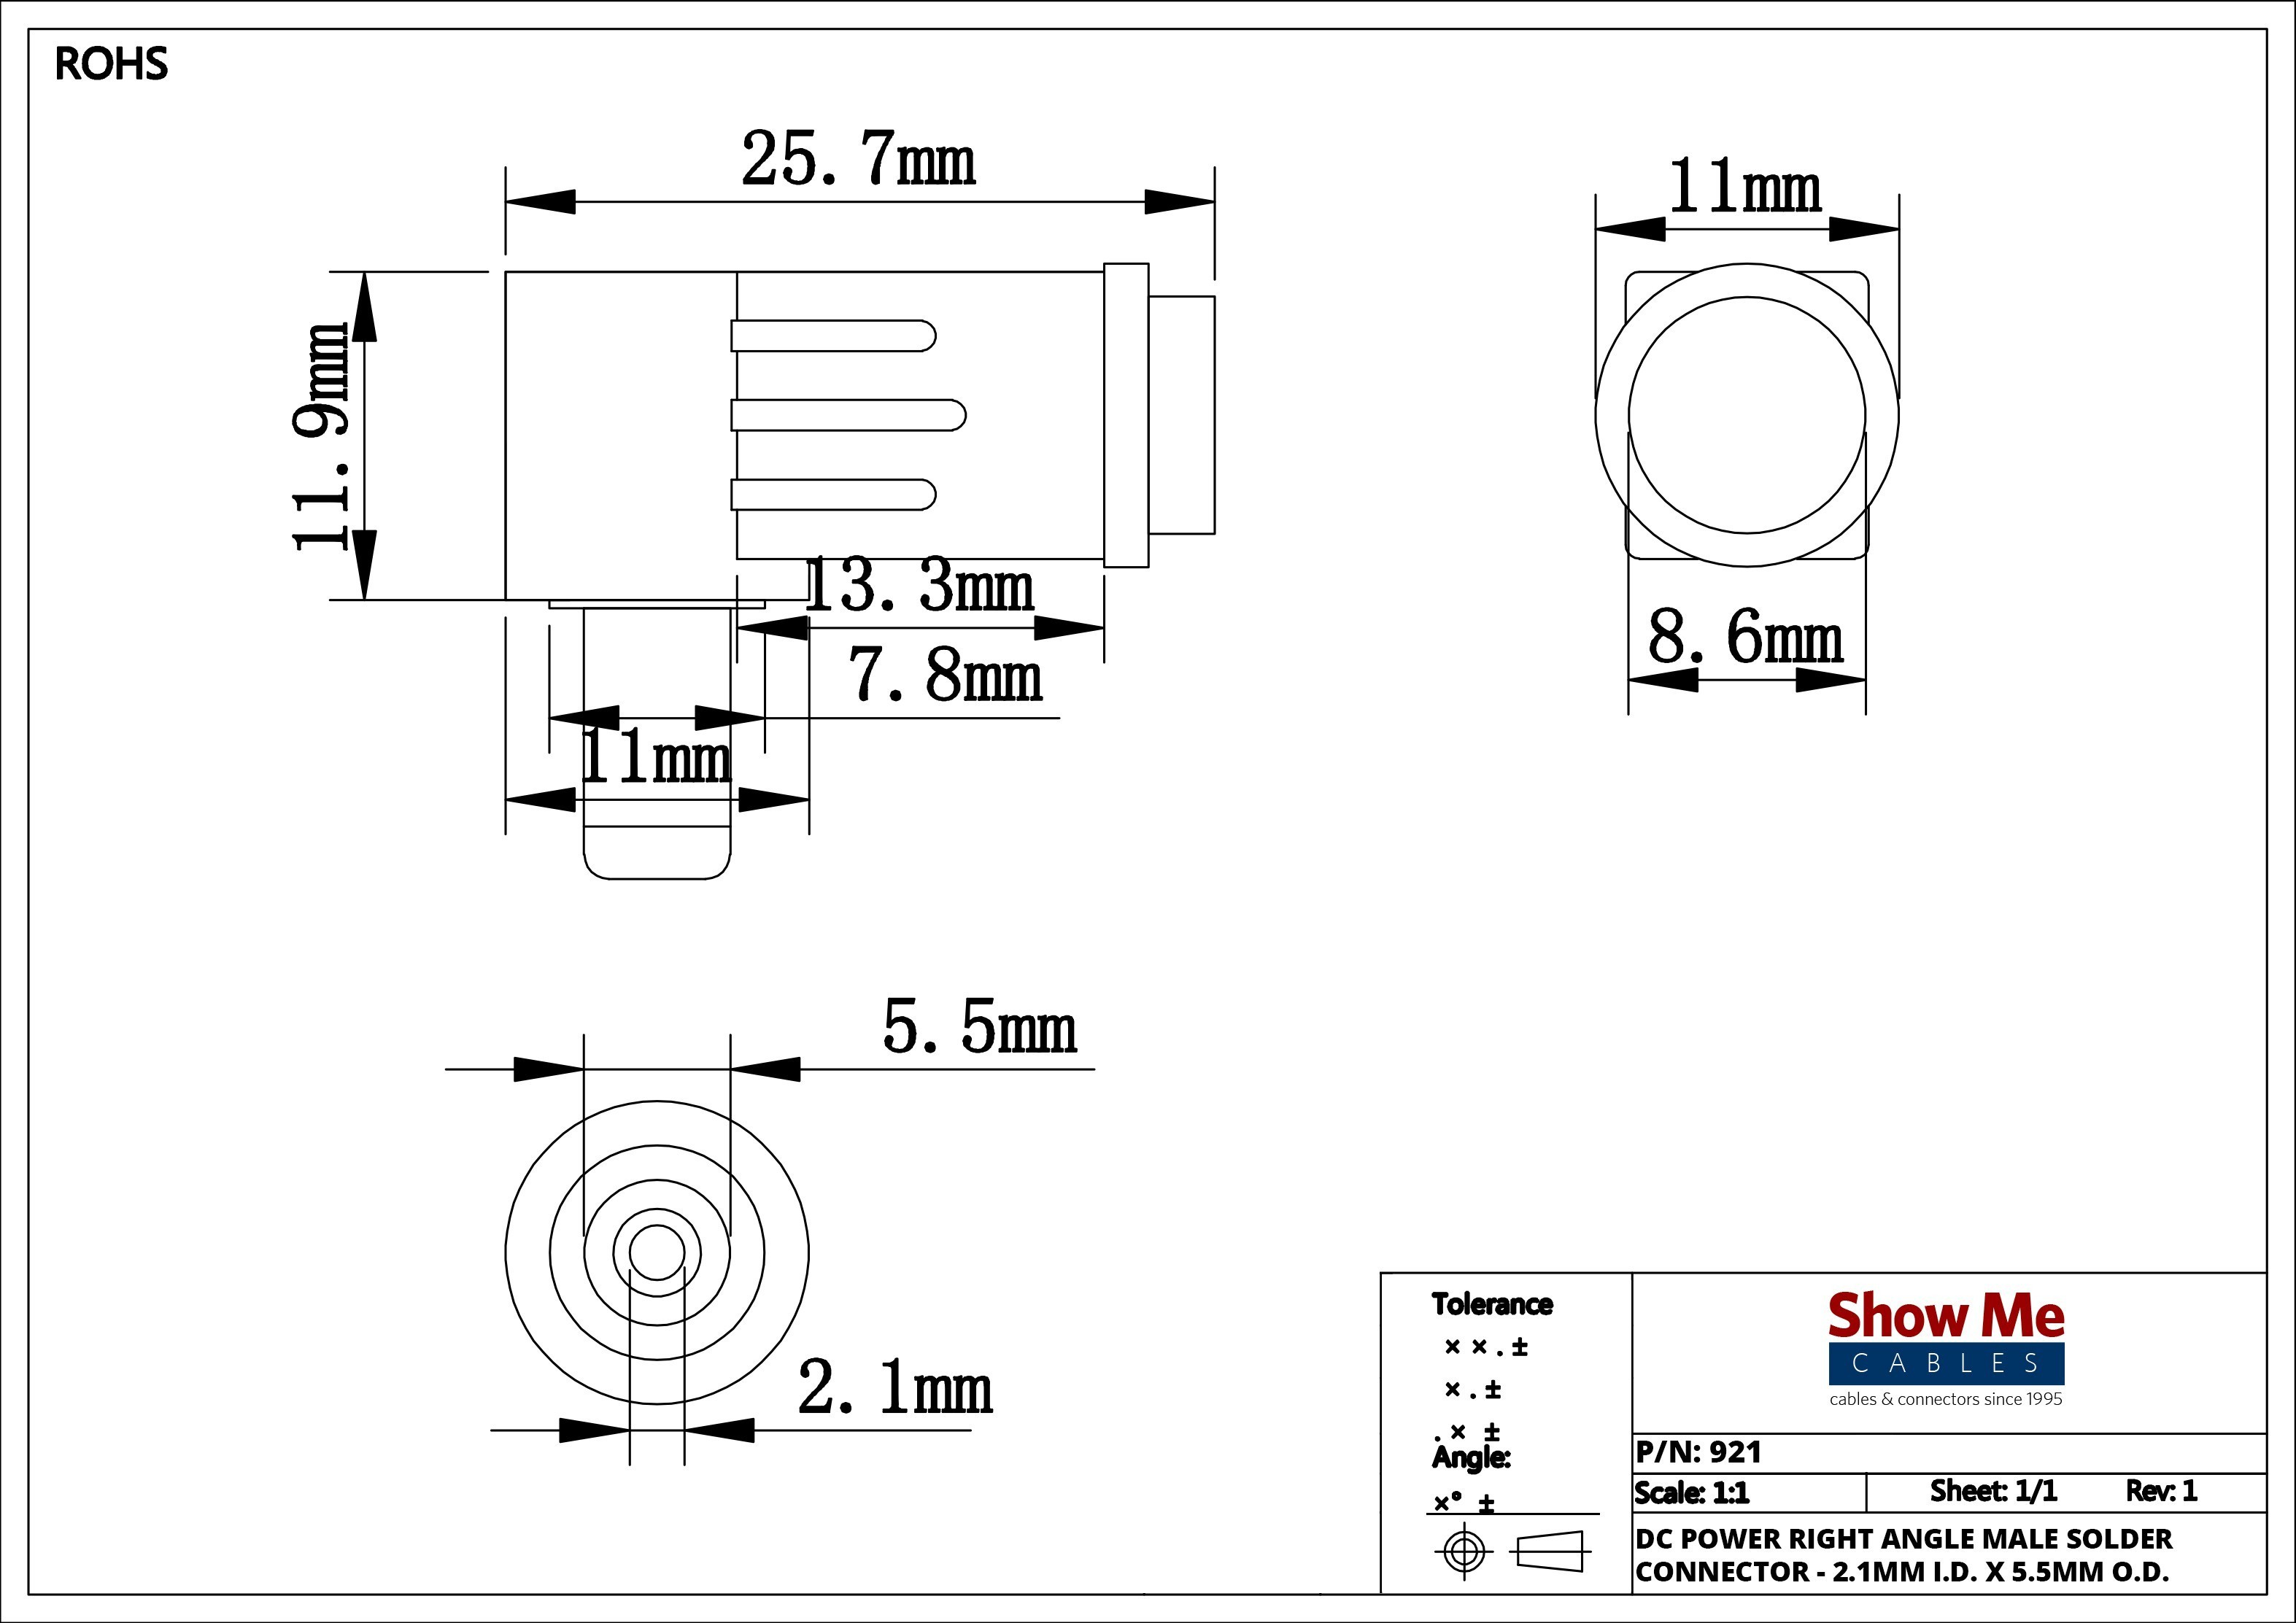 Home Stereo Wiring Diagram whole House Audio Wiring Diagram 3 5 Mm Stereo Jack Wiring Diagram Of Home Stereo Wiring Diagram